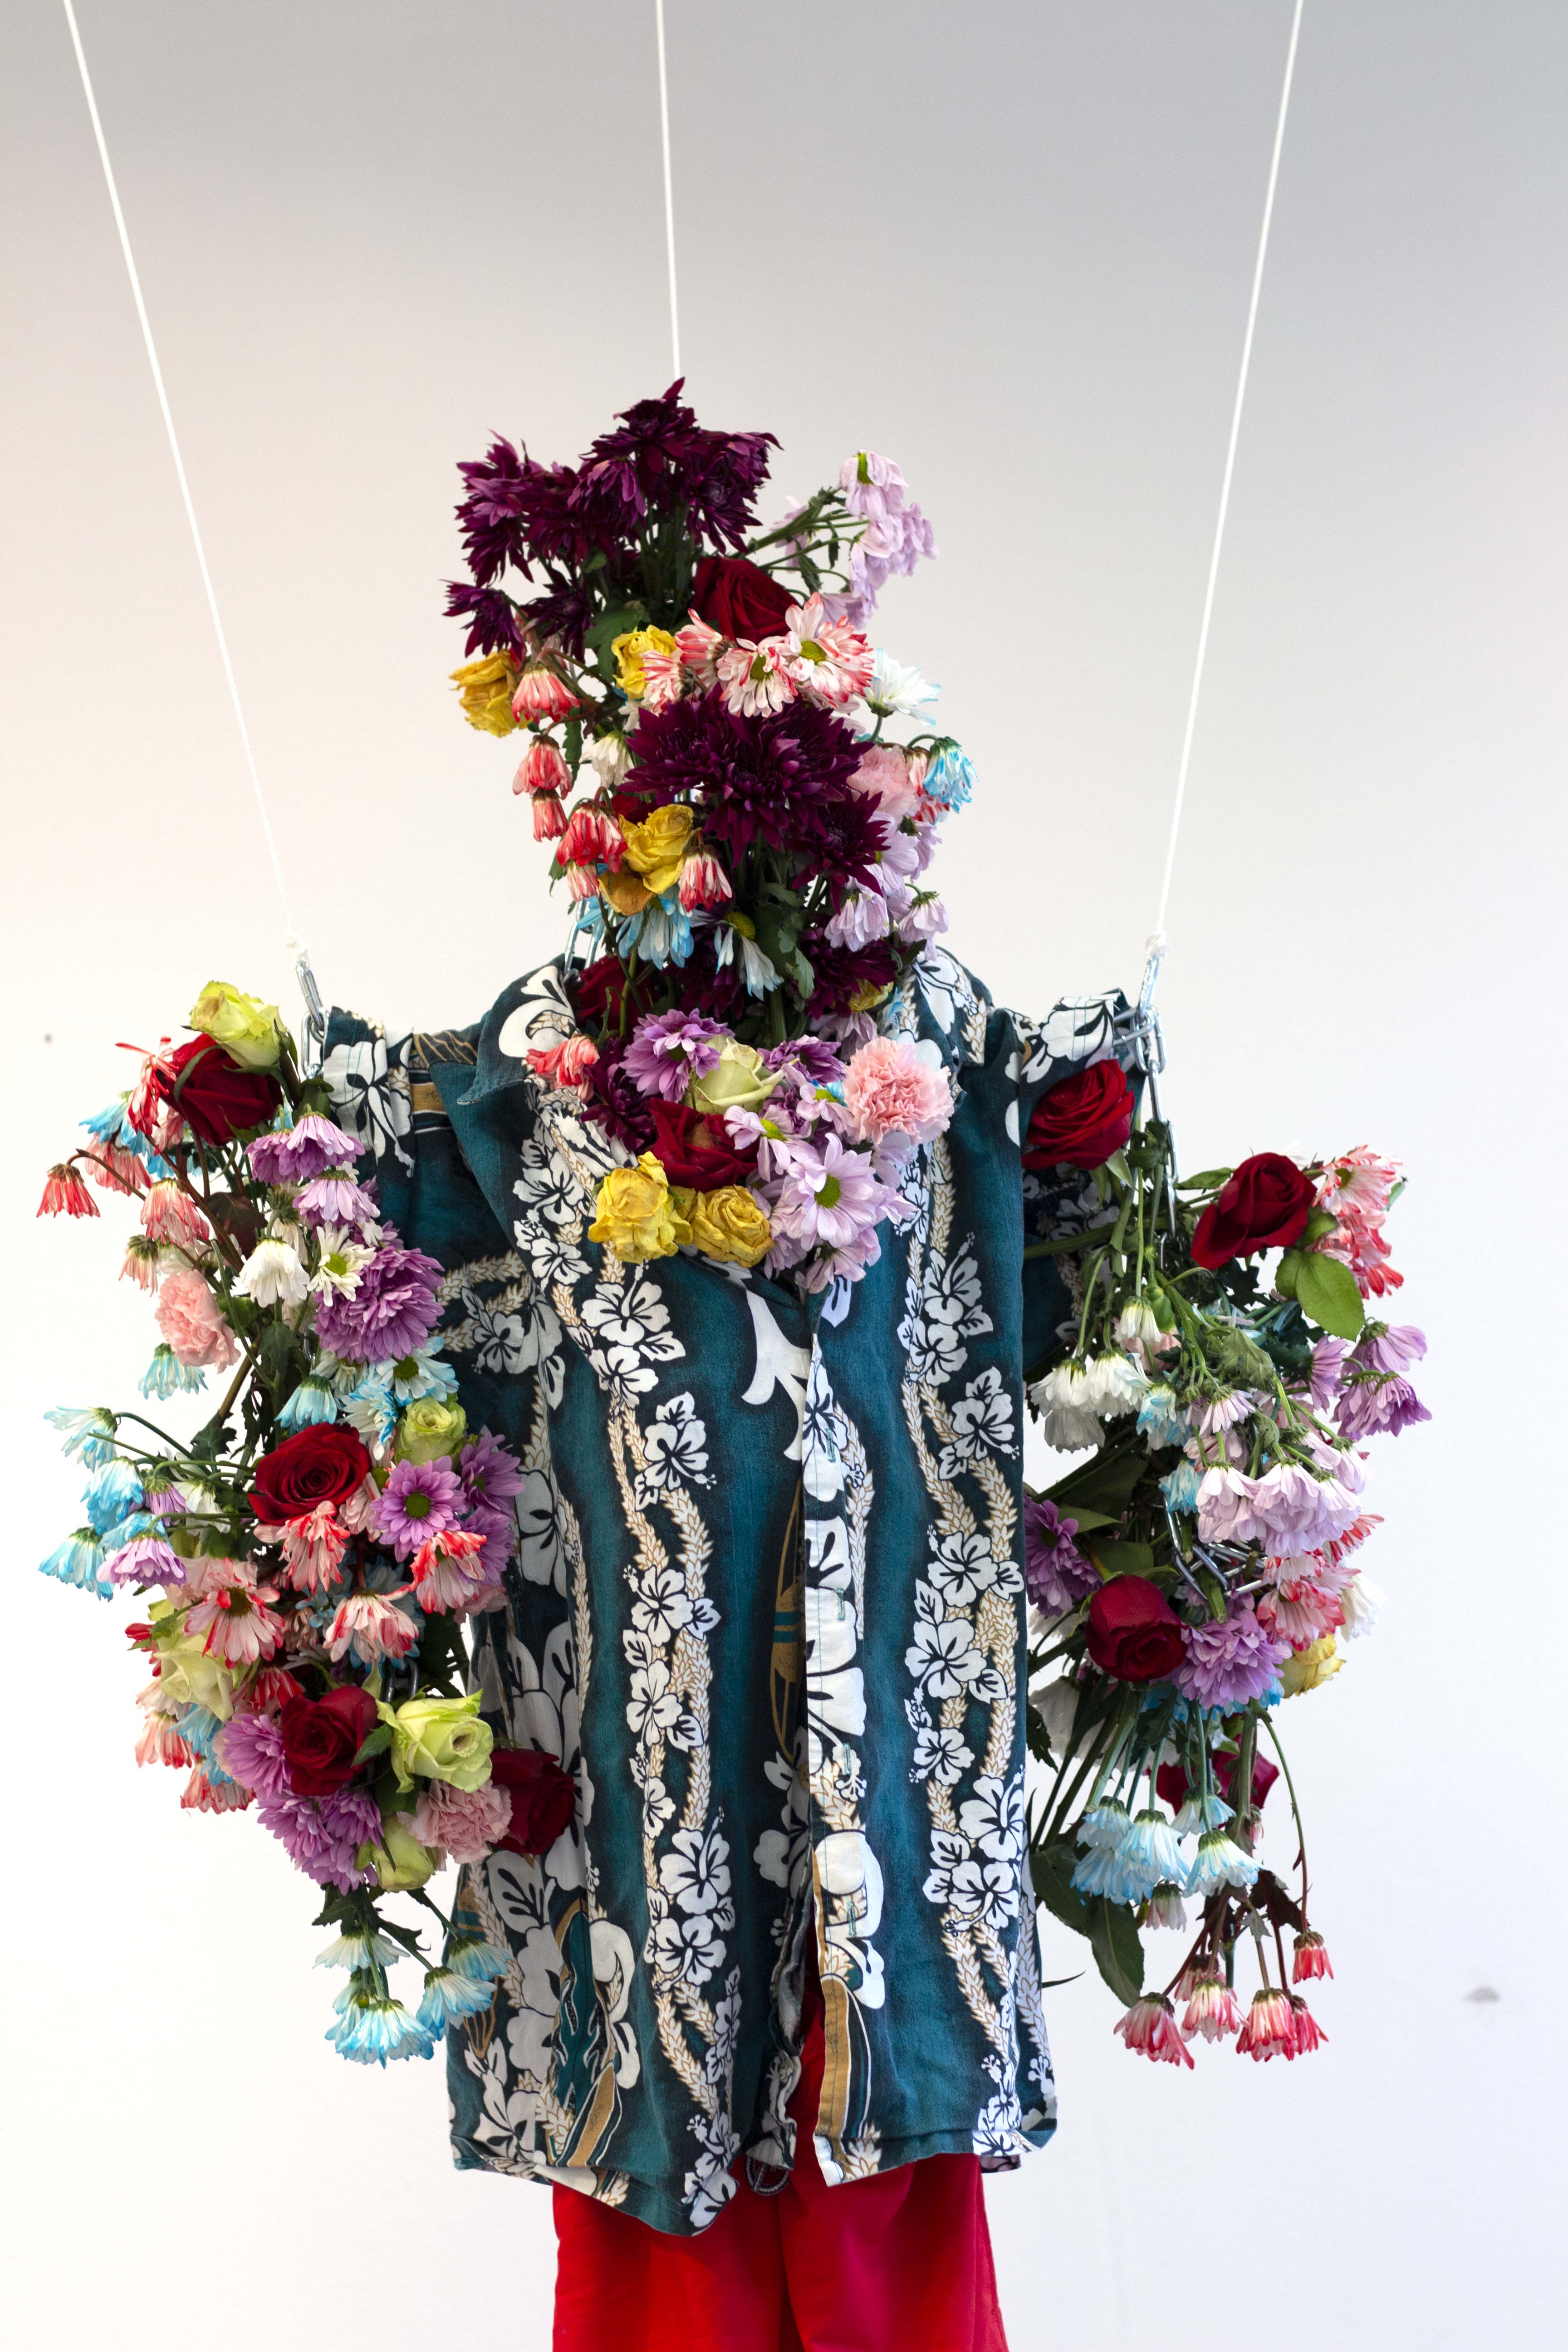 A sculpture made of flowers and clothing.